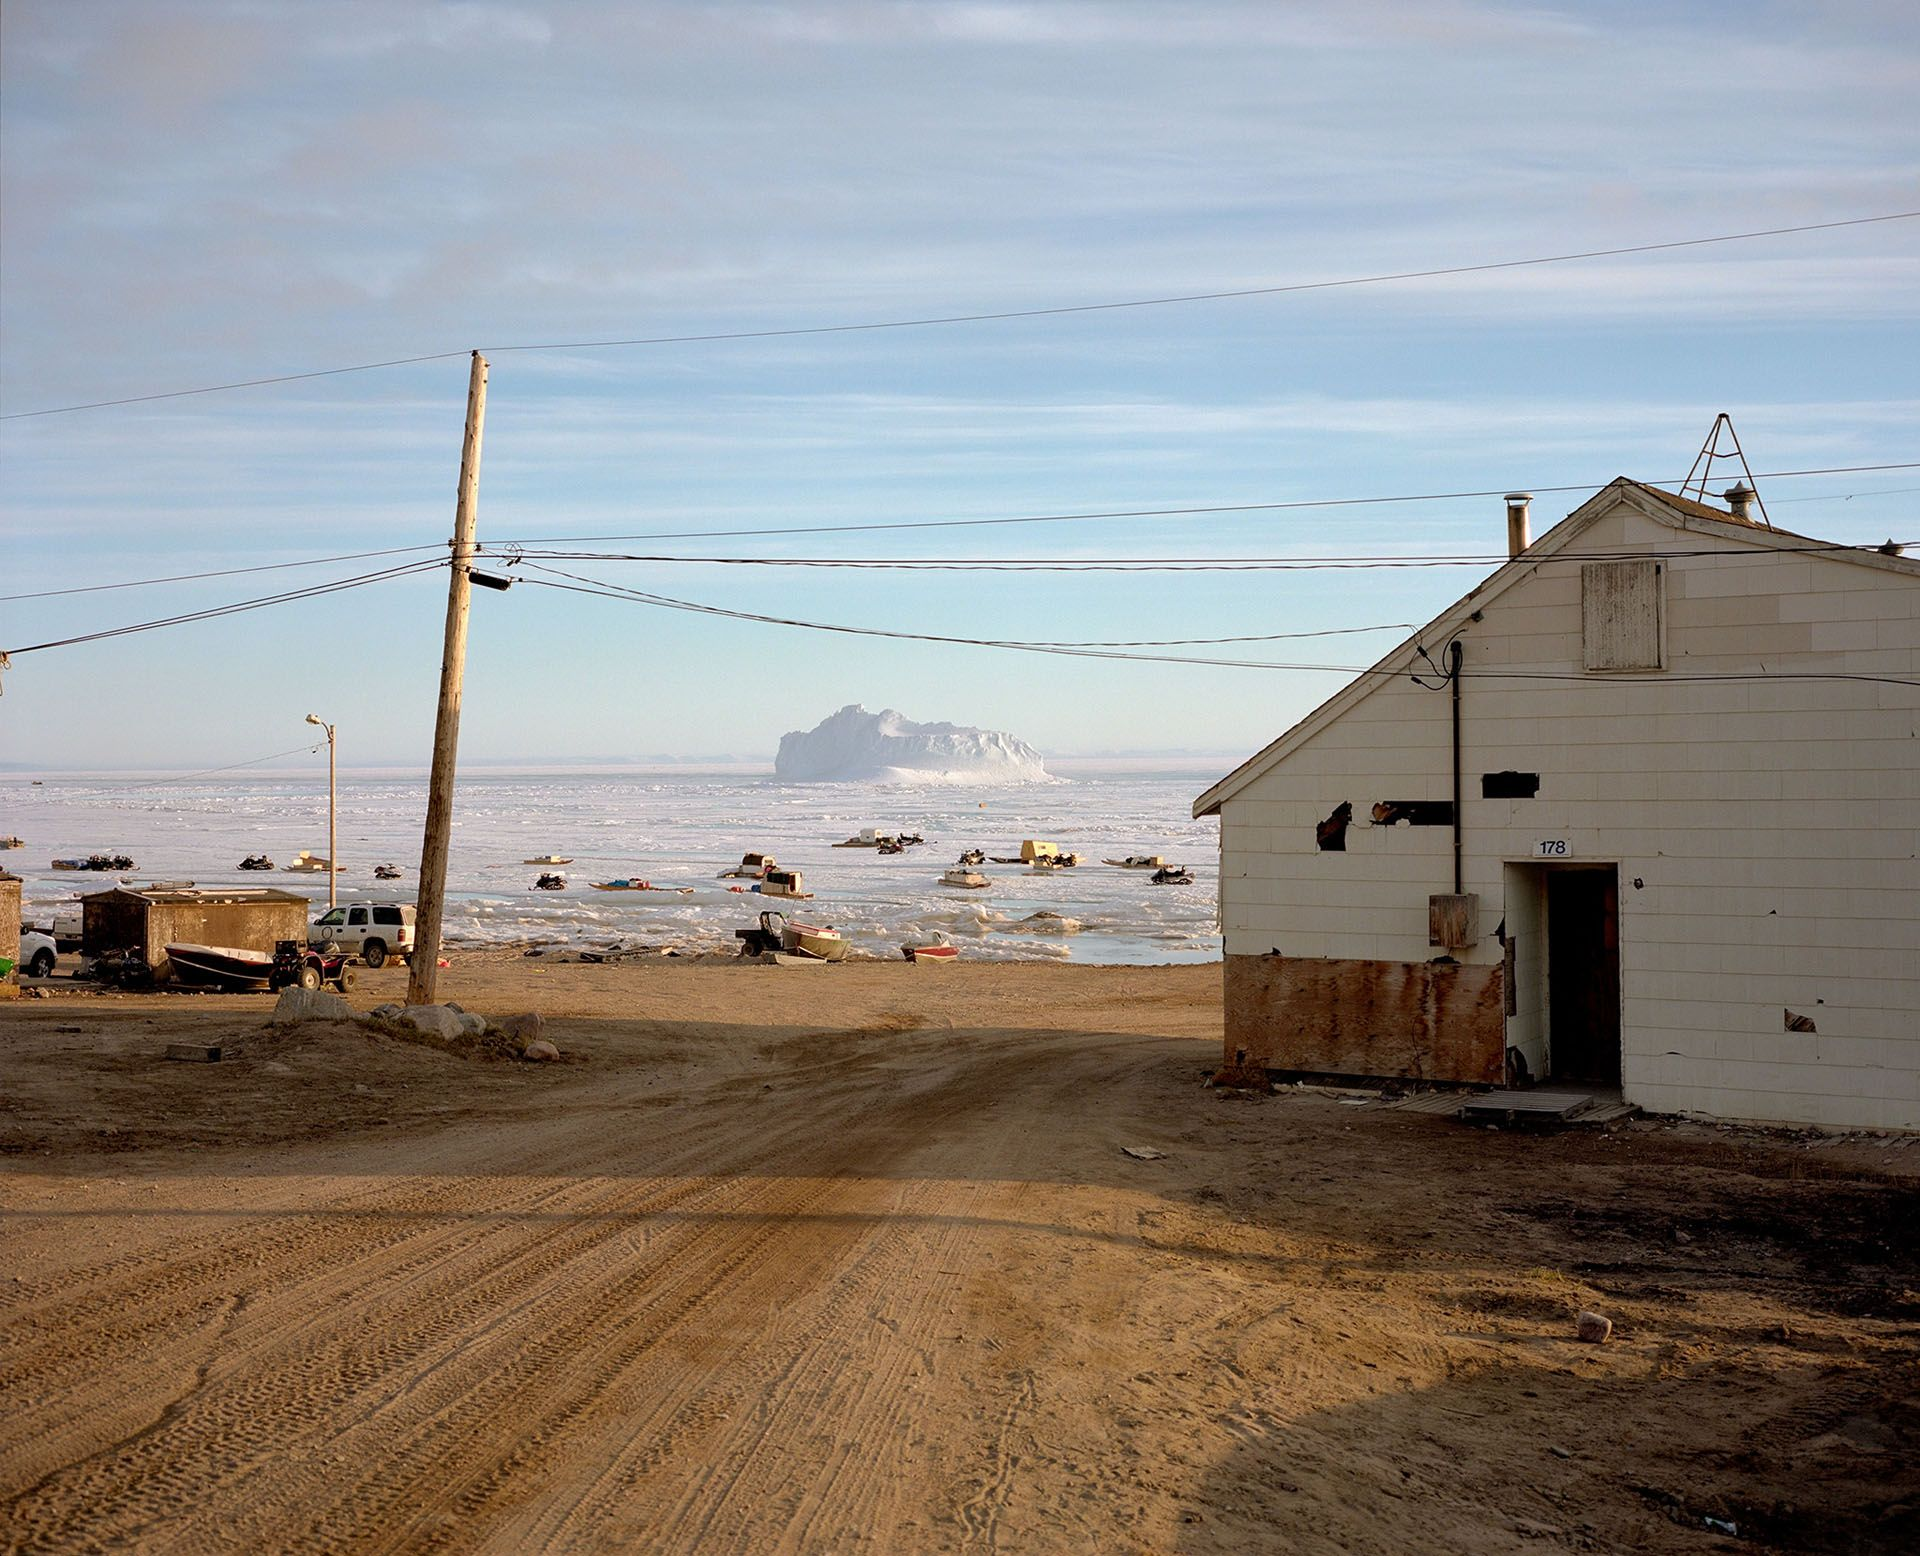 landscape dirt road with little house on the side and ice plates with boats of inuits in the background photographed by Guillaume Simoneau in Pond Inlet for Telegraph magazine